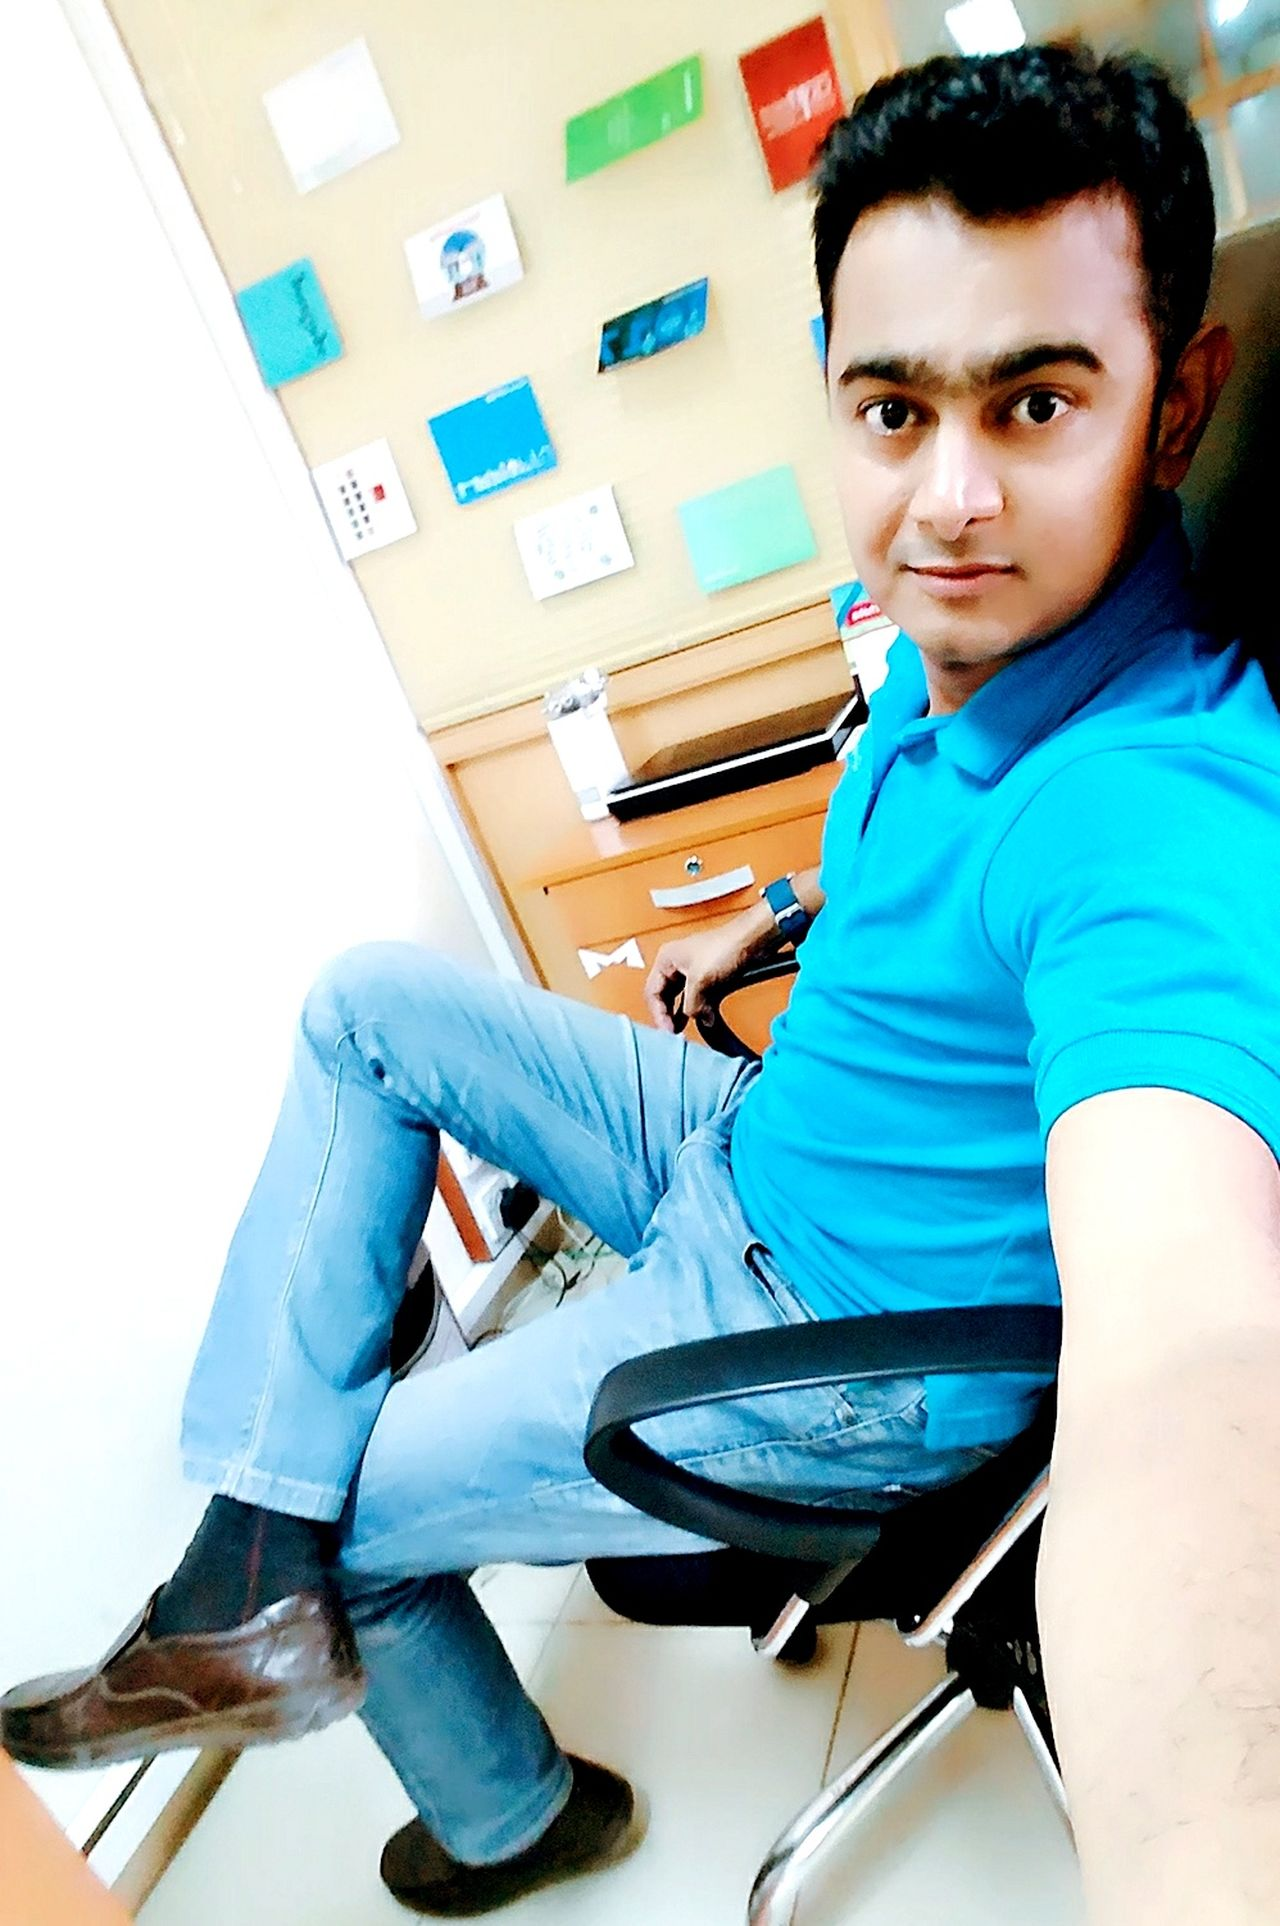 Casual Clothing One Person Young Adult Men Today's Hot Look That's Me HERO ThatsMe Well-dressed Hello World Cool Karachi Man Its Me Lifestyles Check This Out Pakistan Hi Adult Looking At Camera Style MFR Rathod Mfrbphotography Black Hair